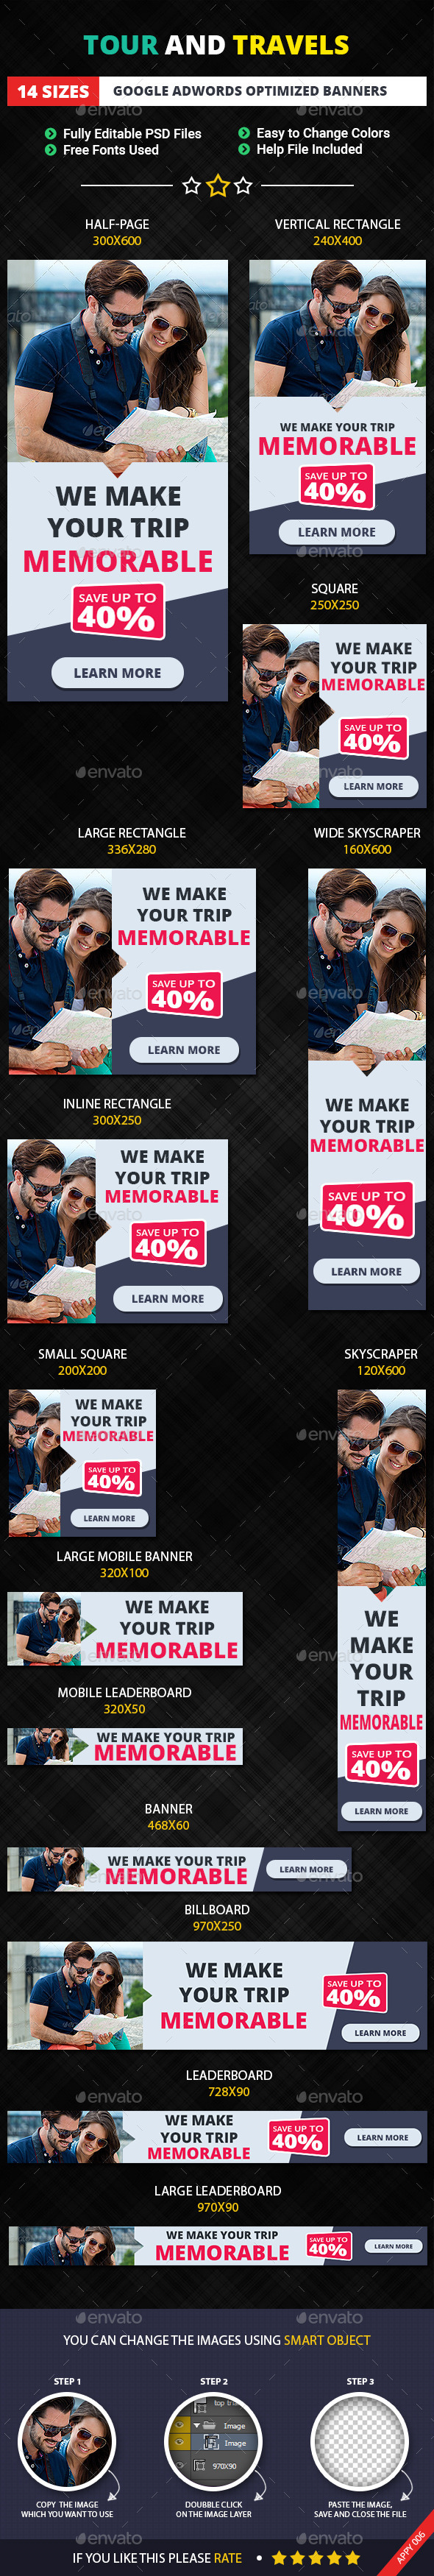 GraphicRiver Tour and Travels Banner Template 11539917